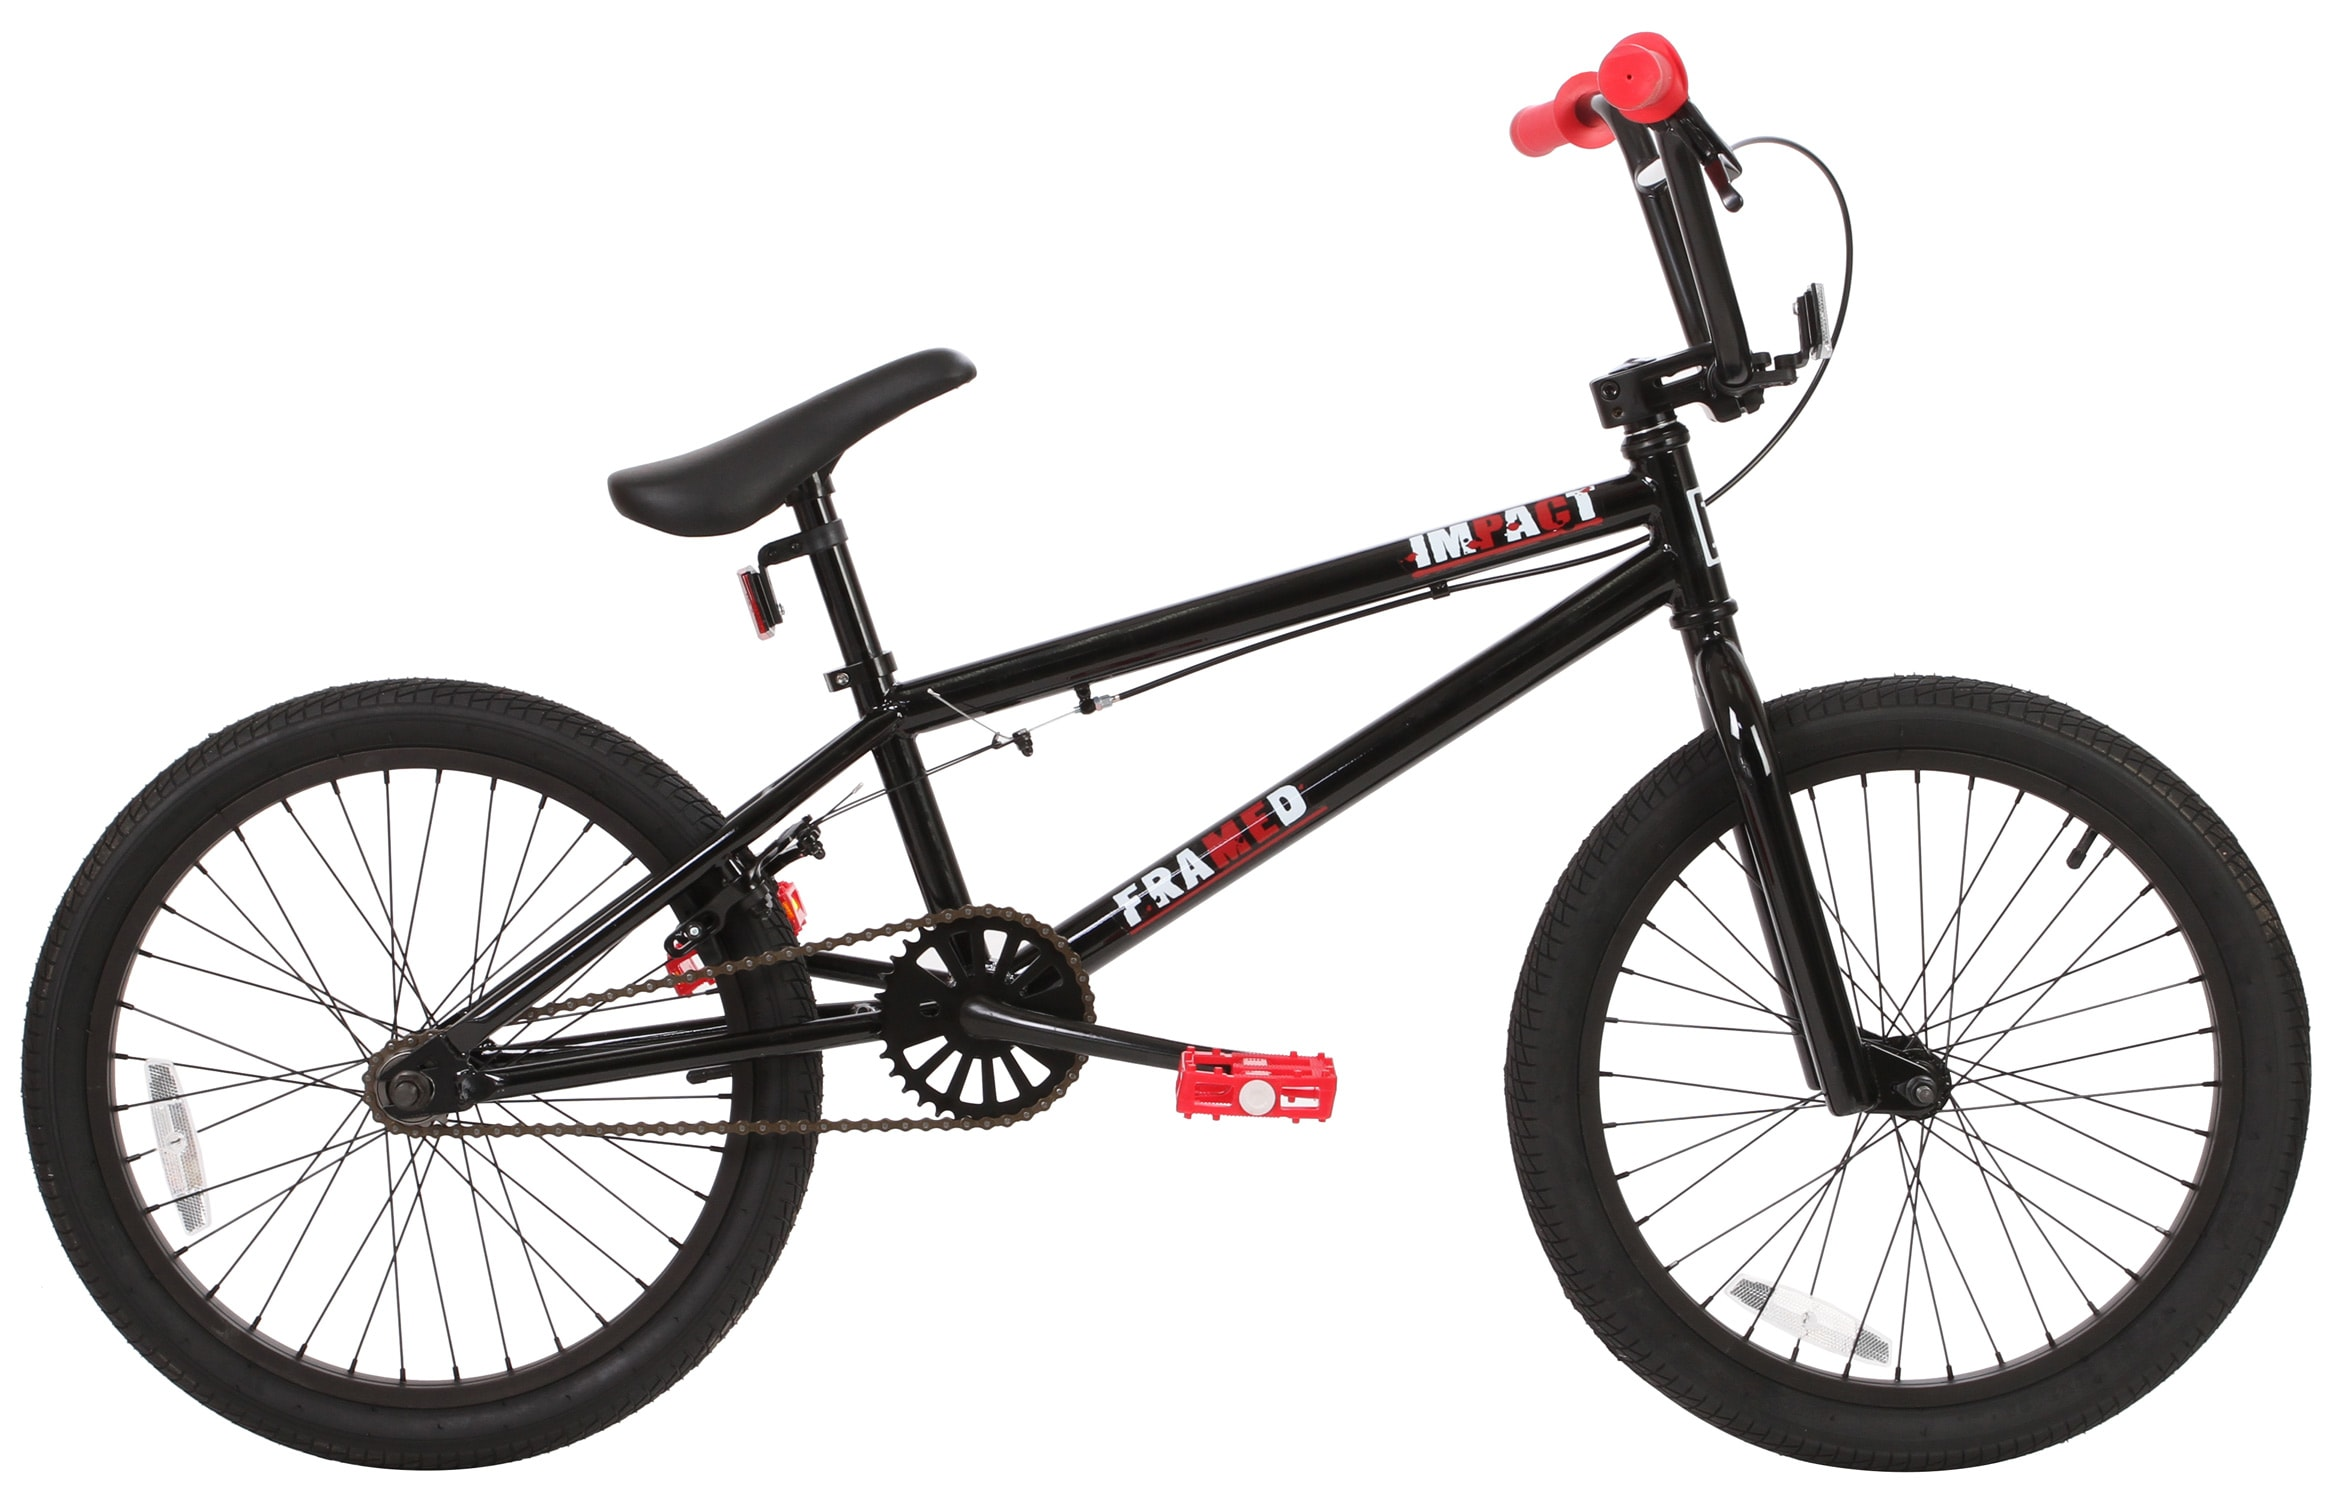 Bmx Bikes For Sale Cheap Framed Impact BMX Bike in